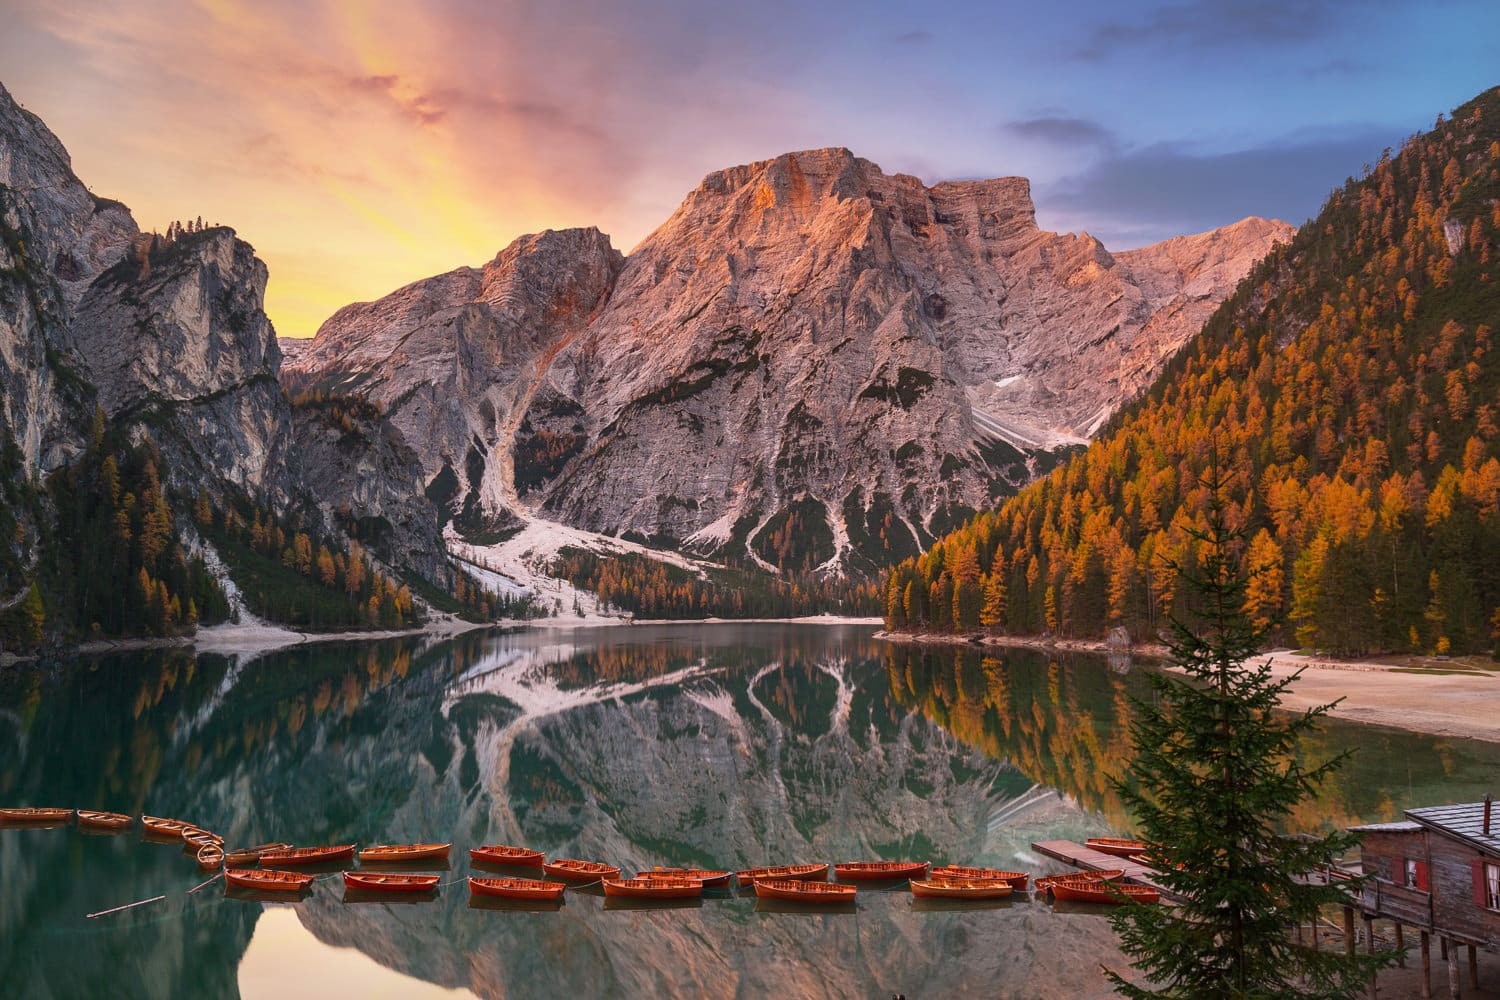 Lago di Braies lake and Seekofel peak at sunrise, Dolomites. Ita